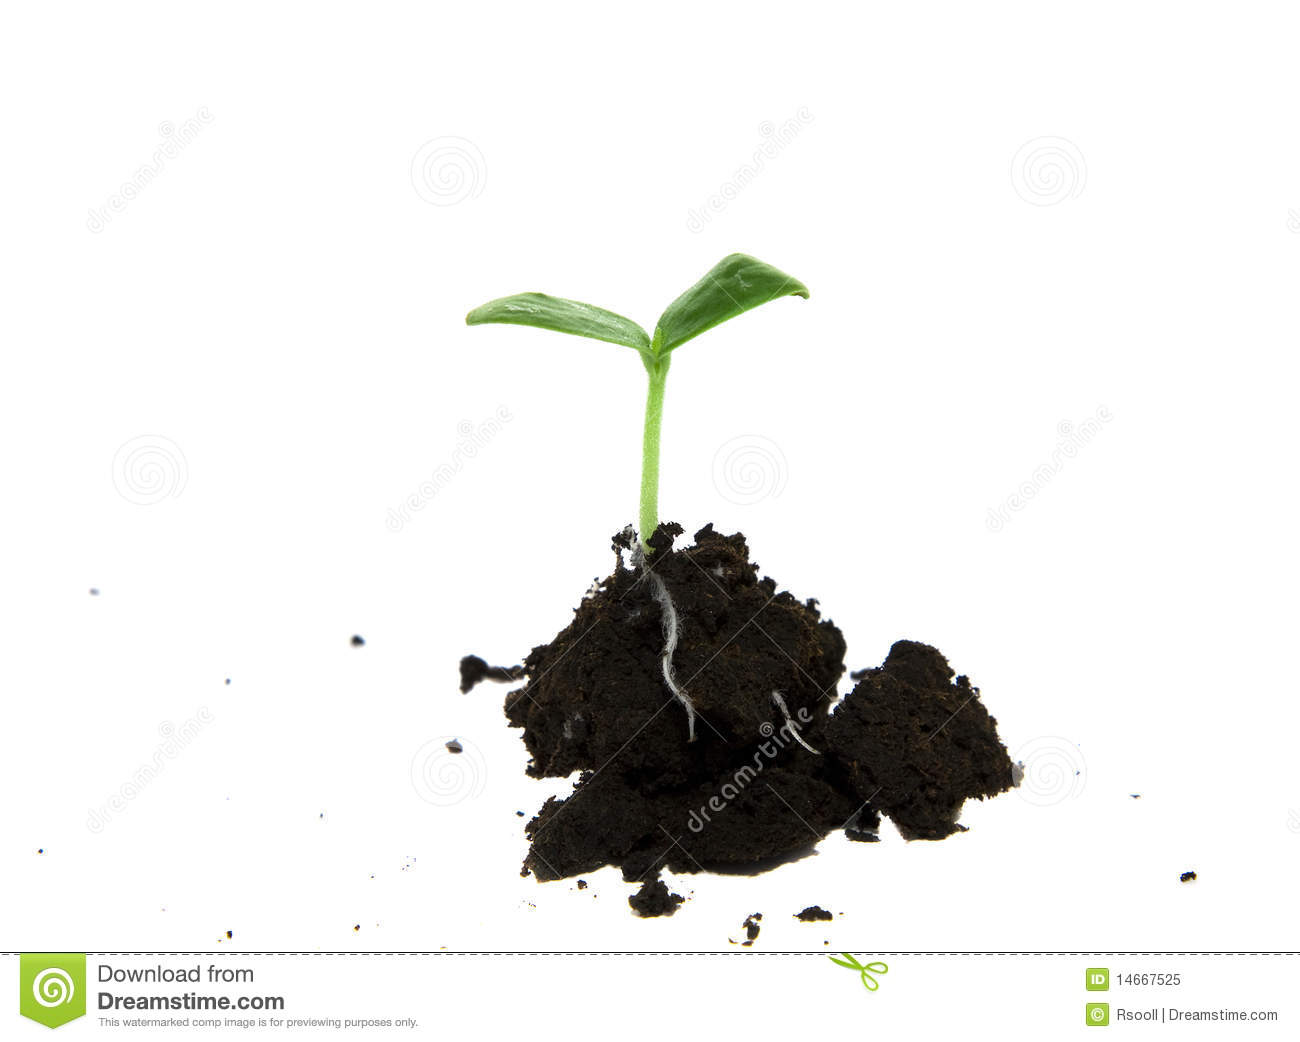 The dug out plant